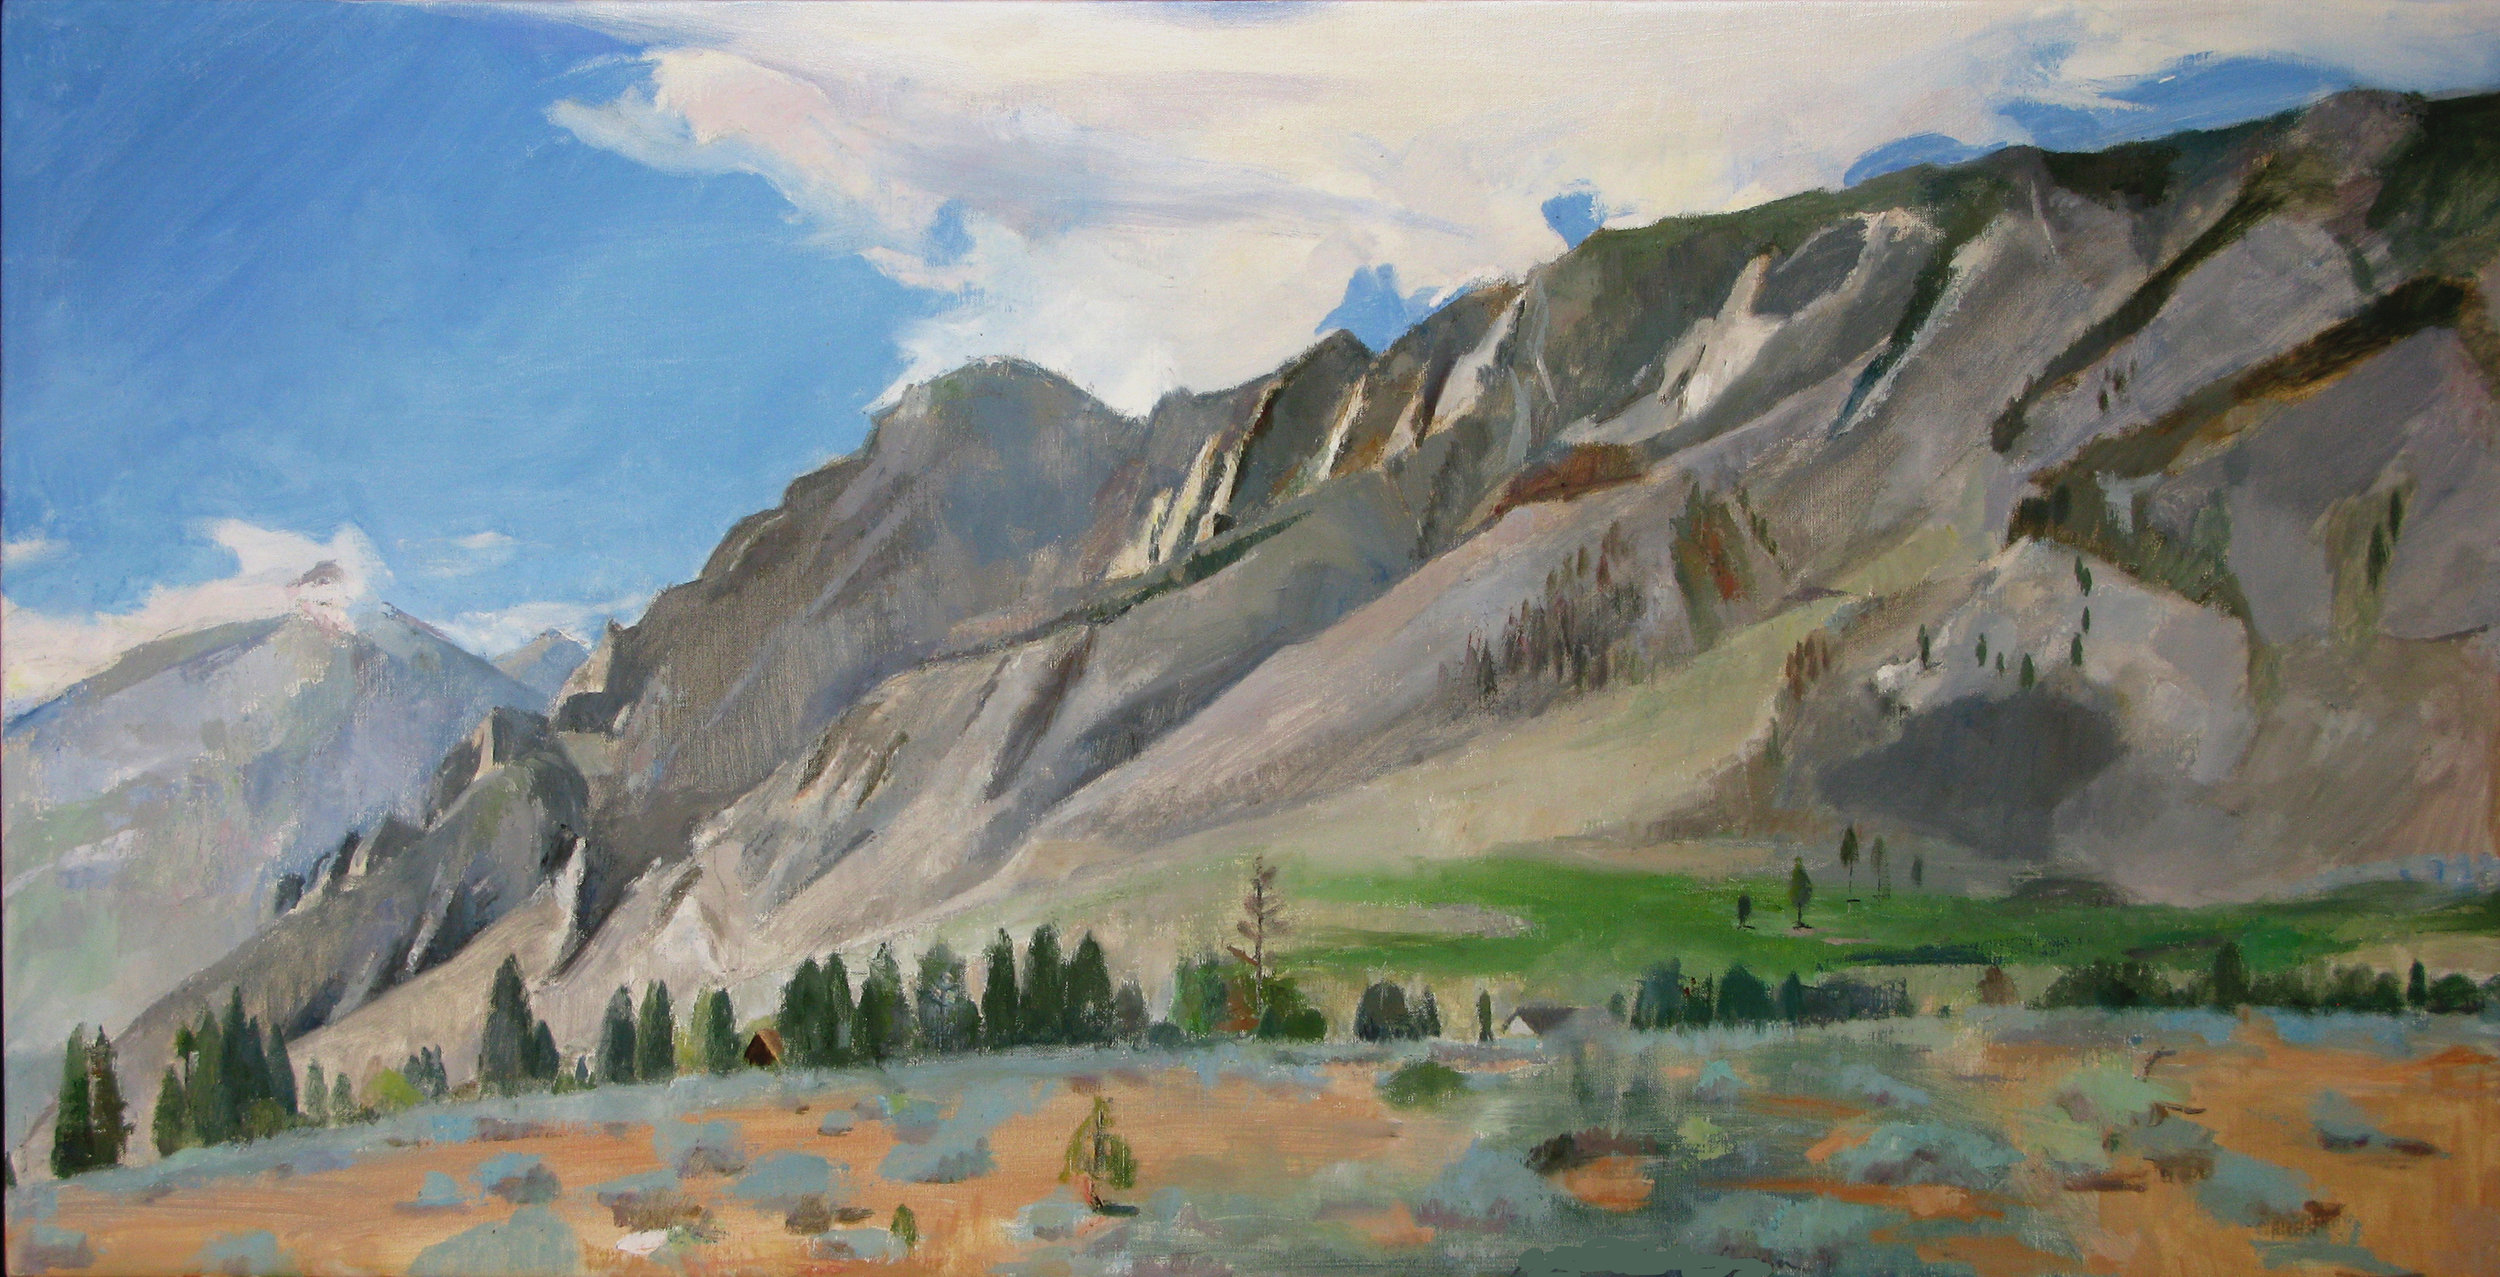 "Swall Meadows, 24"" x 48"", oil on linen"